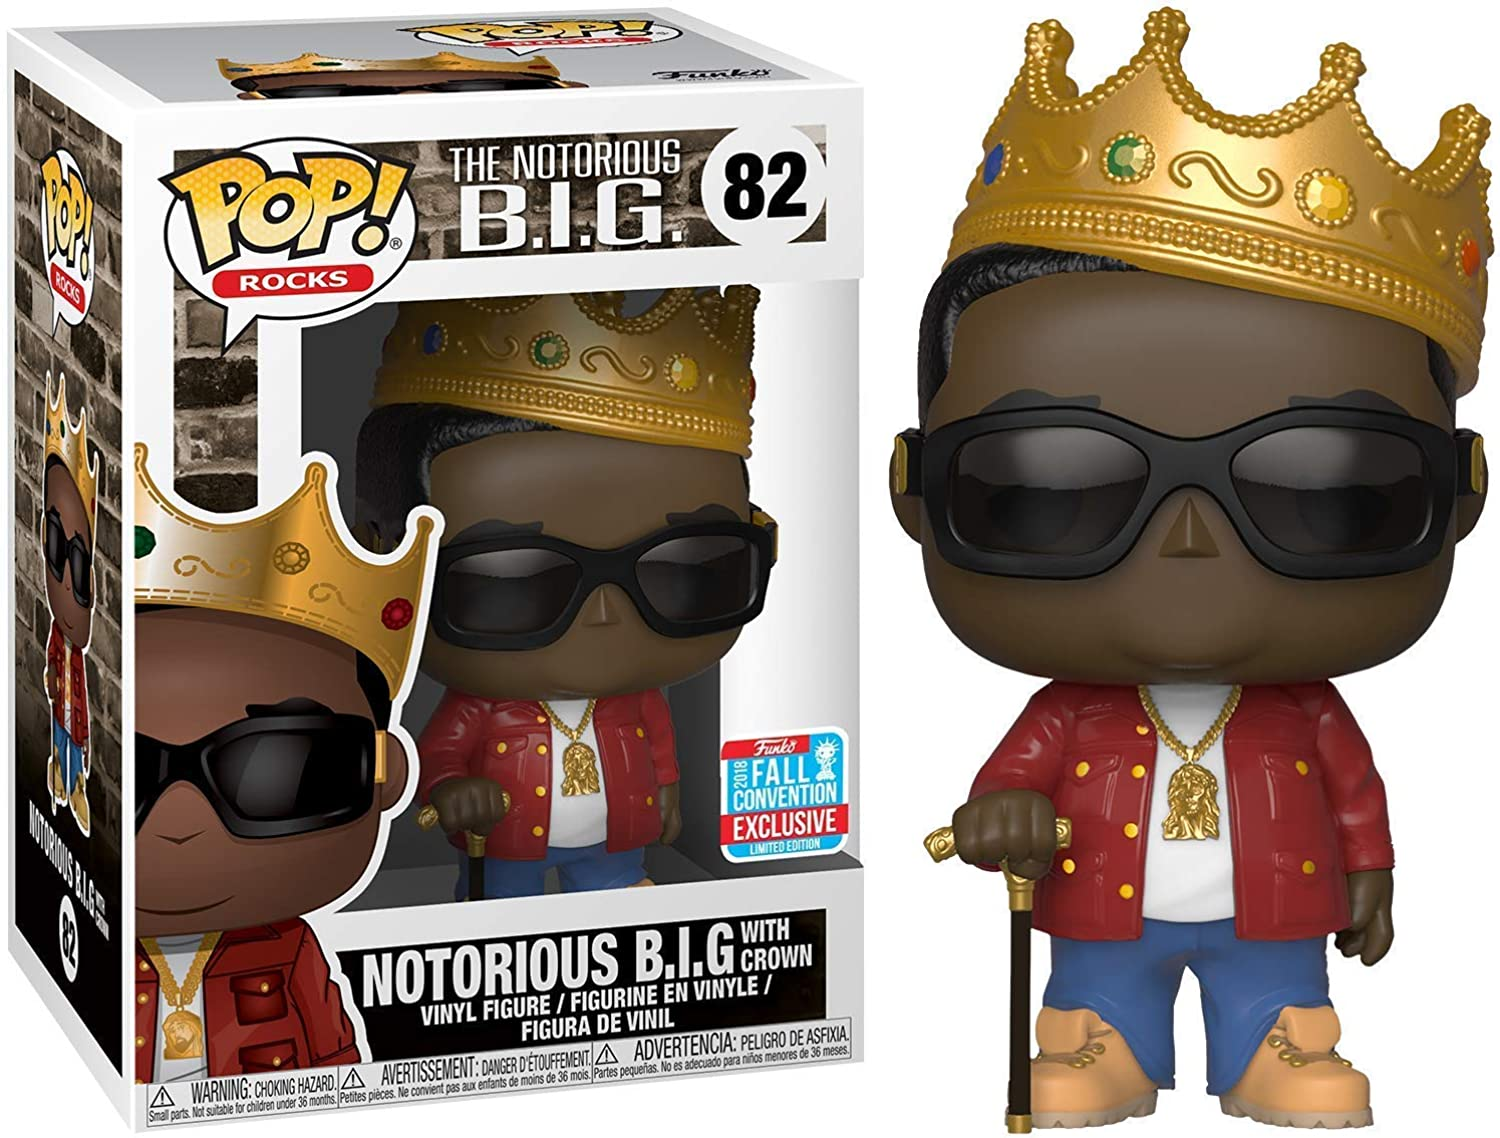 Funko Pop  Rocks  The Notorious B.I.G.  Notorious B.I.G. with Crown (Limited NYCC 2018 Exclusive)  82